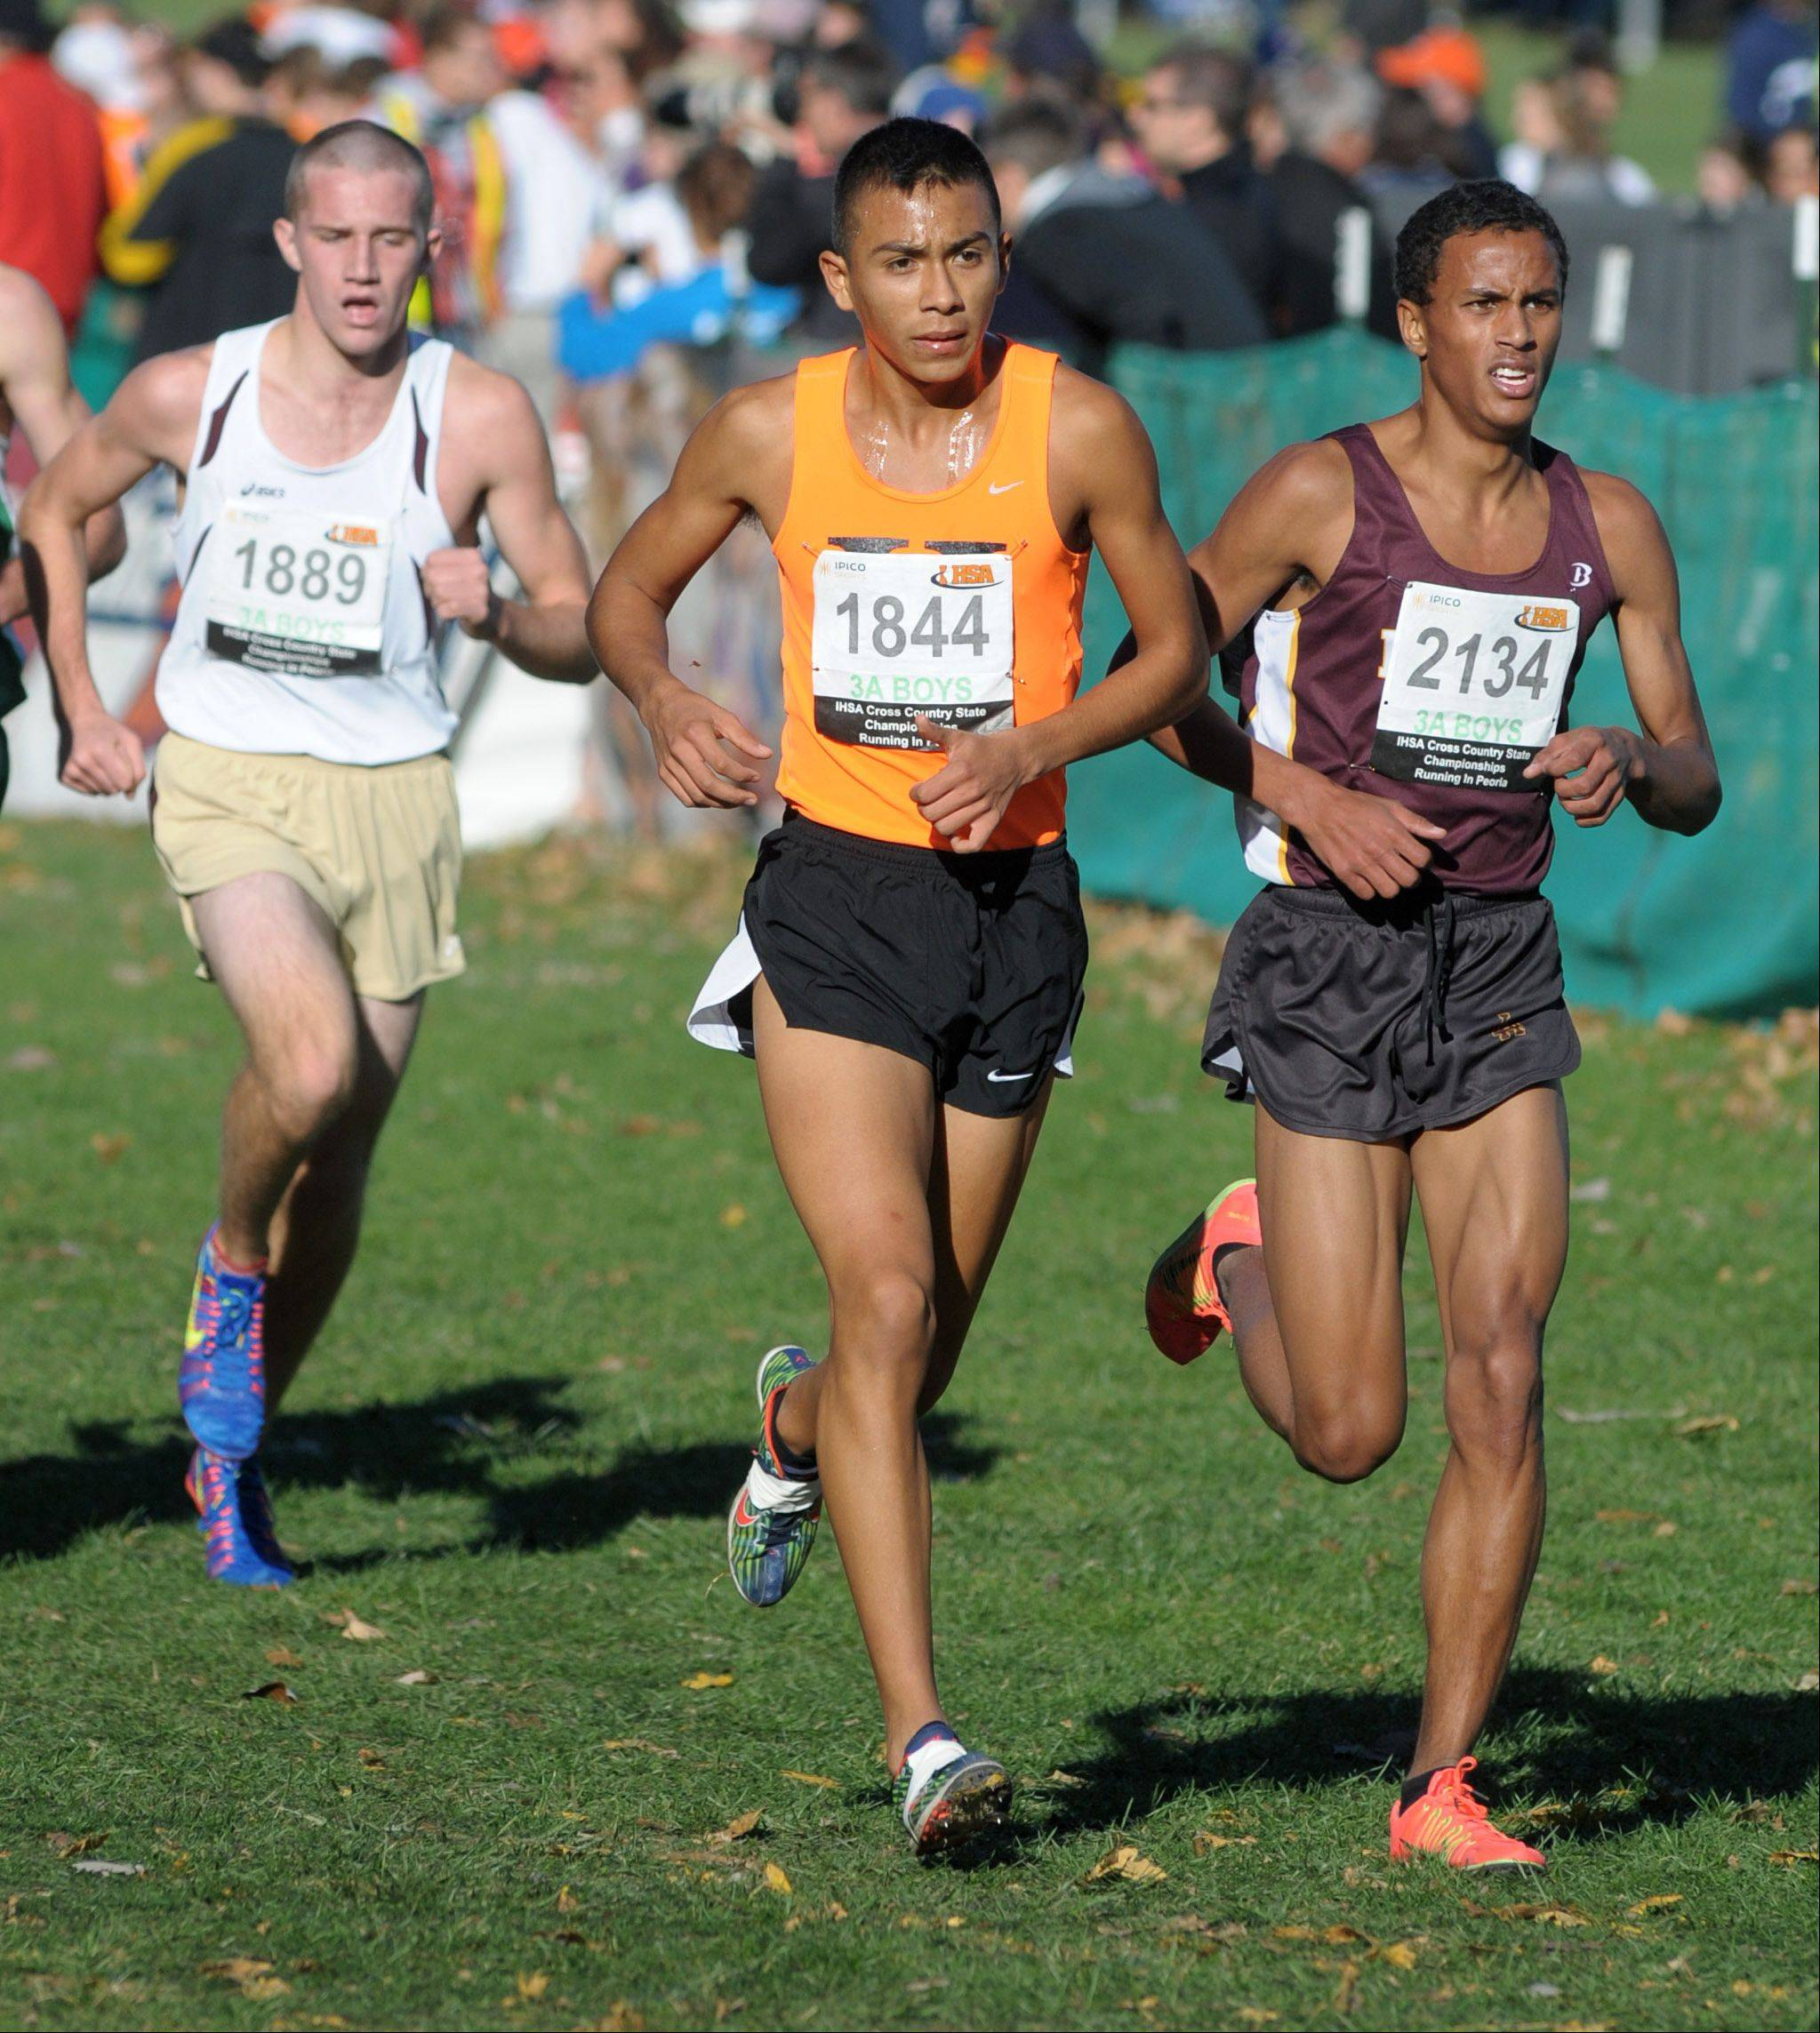 Hersey's David Rodriguez (1844) takes 18th place in the Class 3A IHSA cross country state final at Detweiller Park in Peoria on Saturday, November 9.